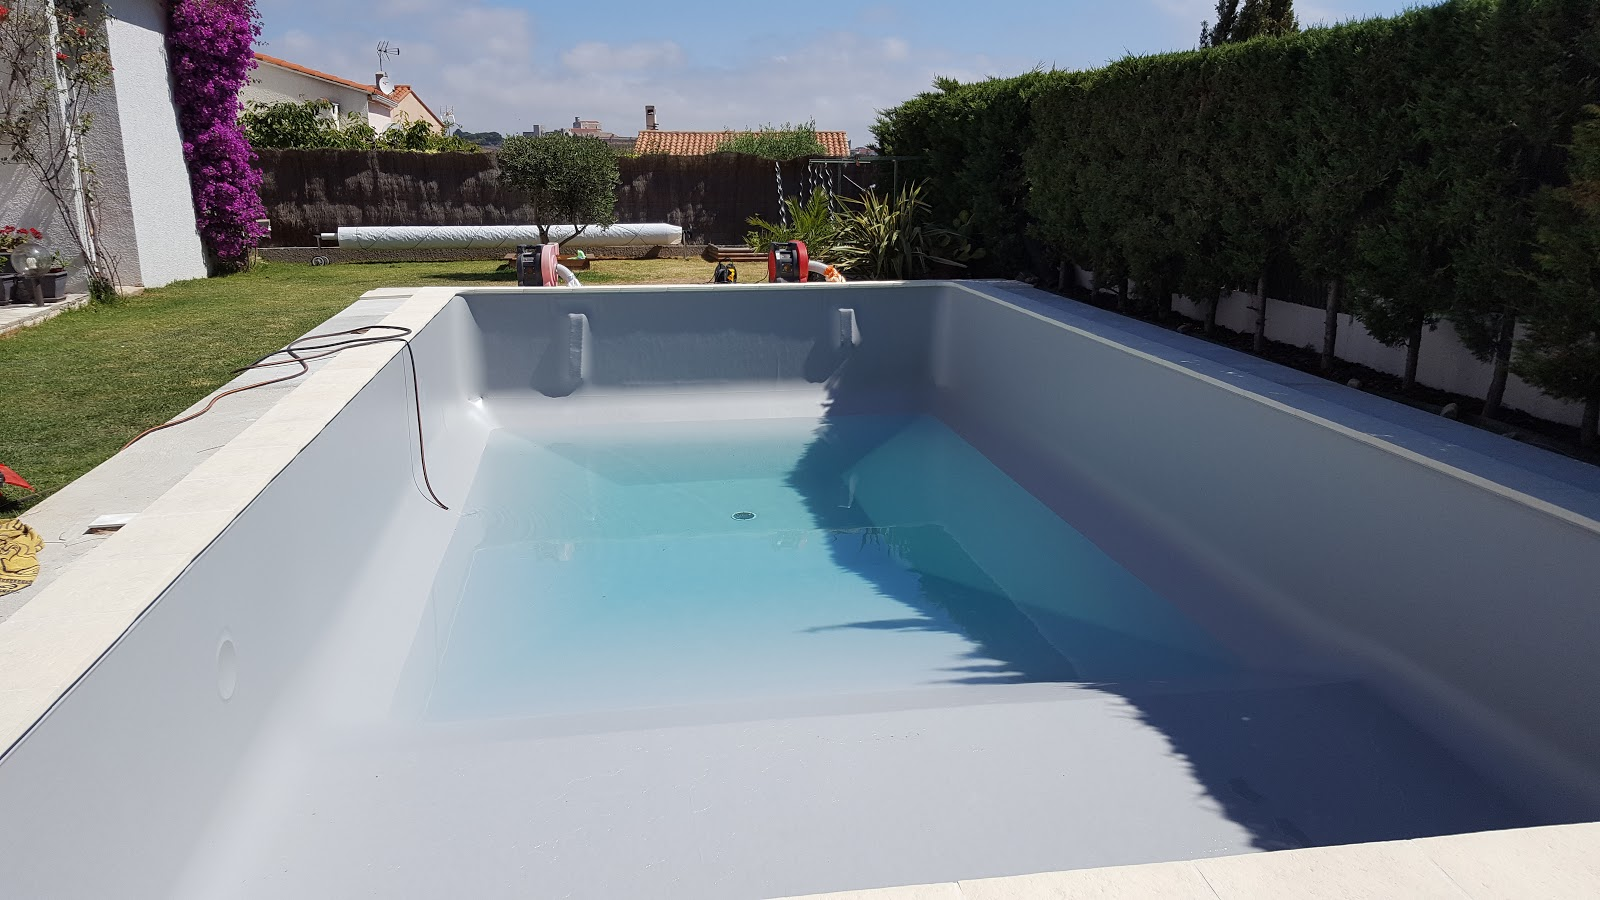 Piscine perpignan 66 aquazur piscine installation for Liner piscine sur mesure 85 100